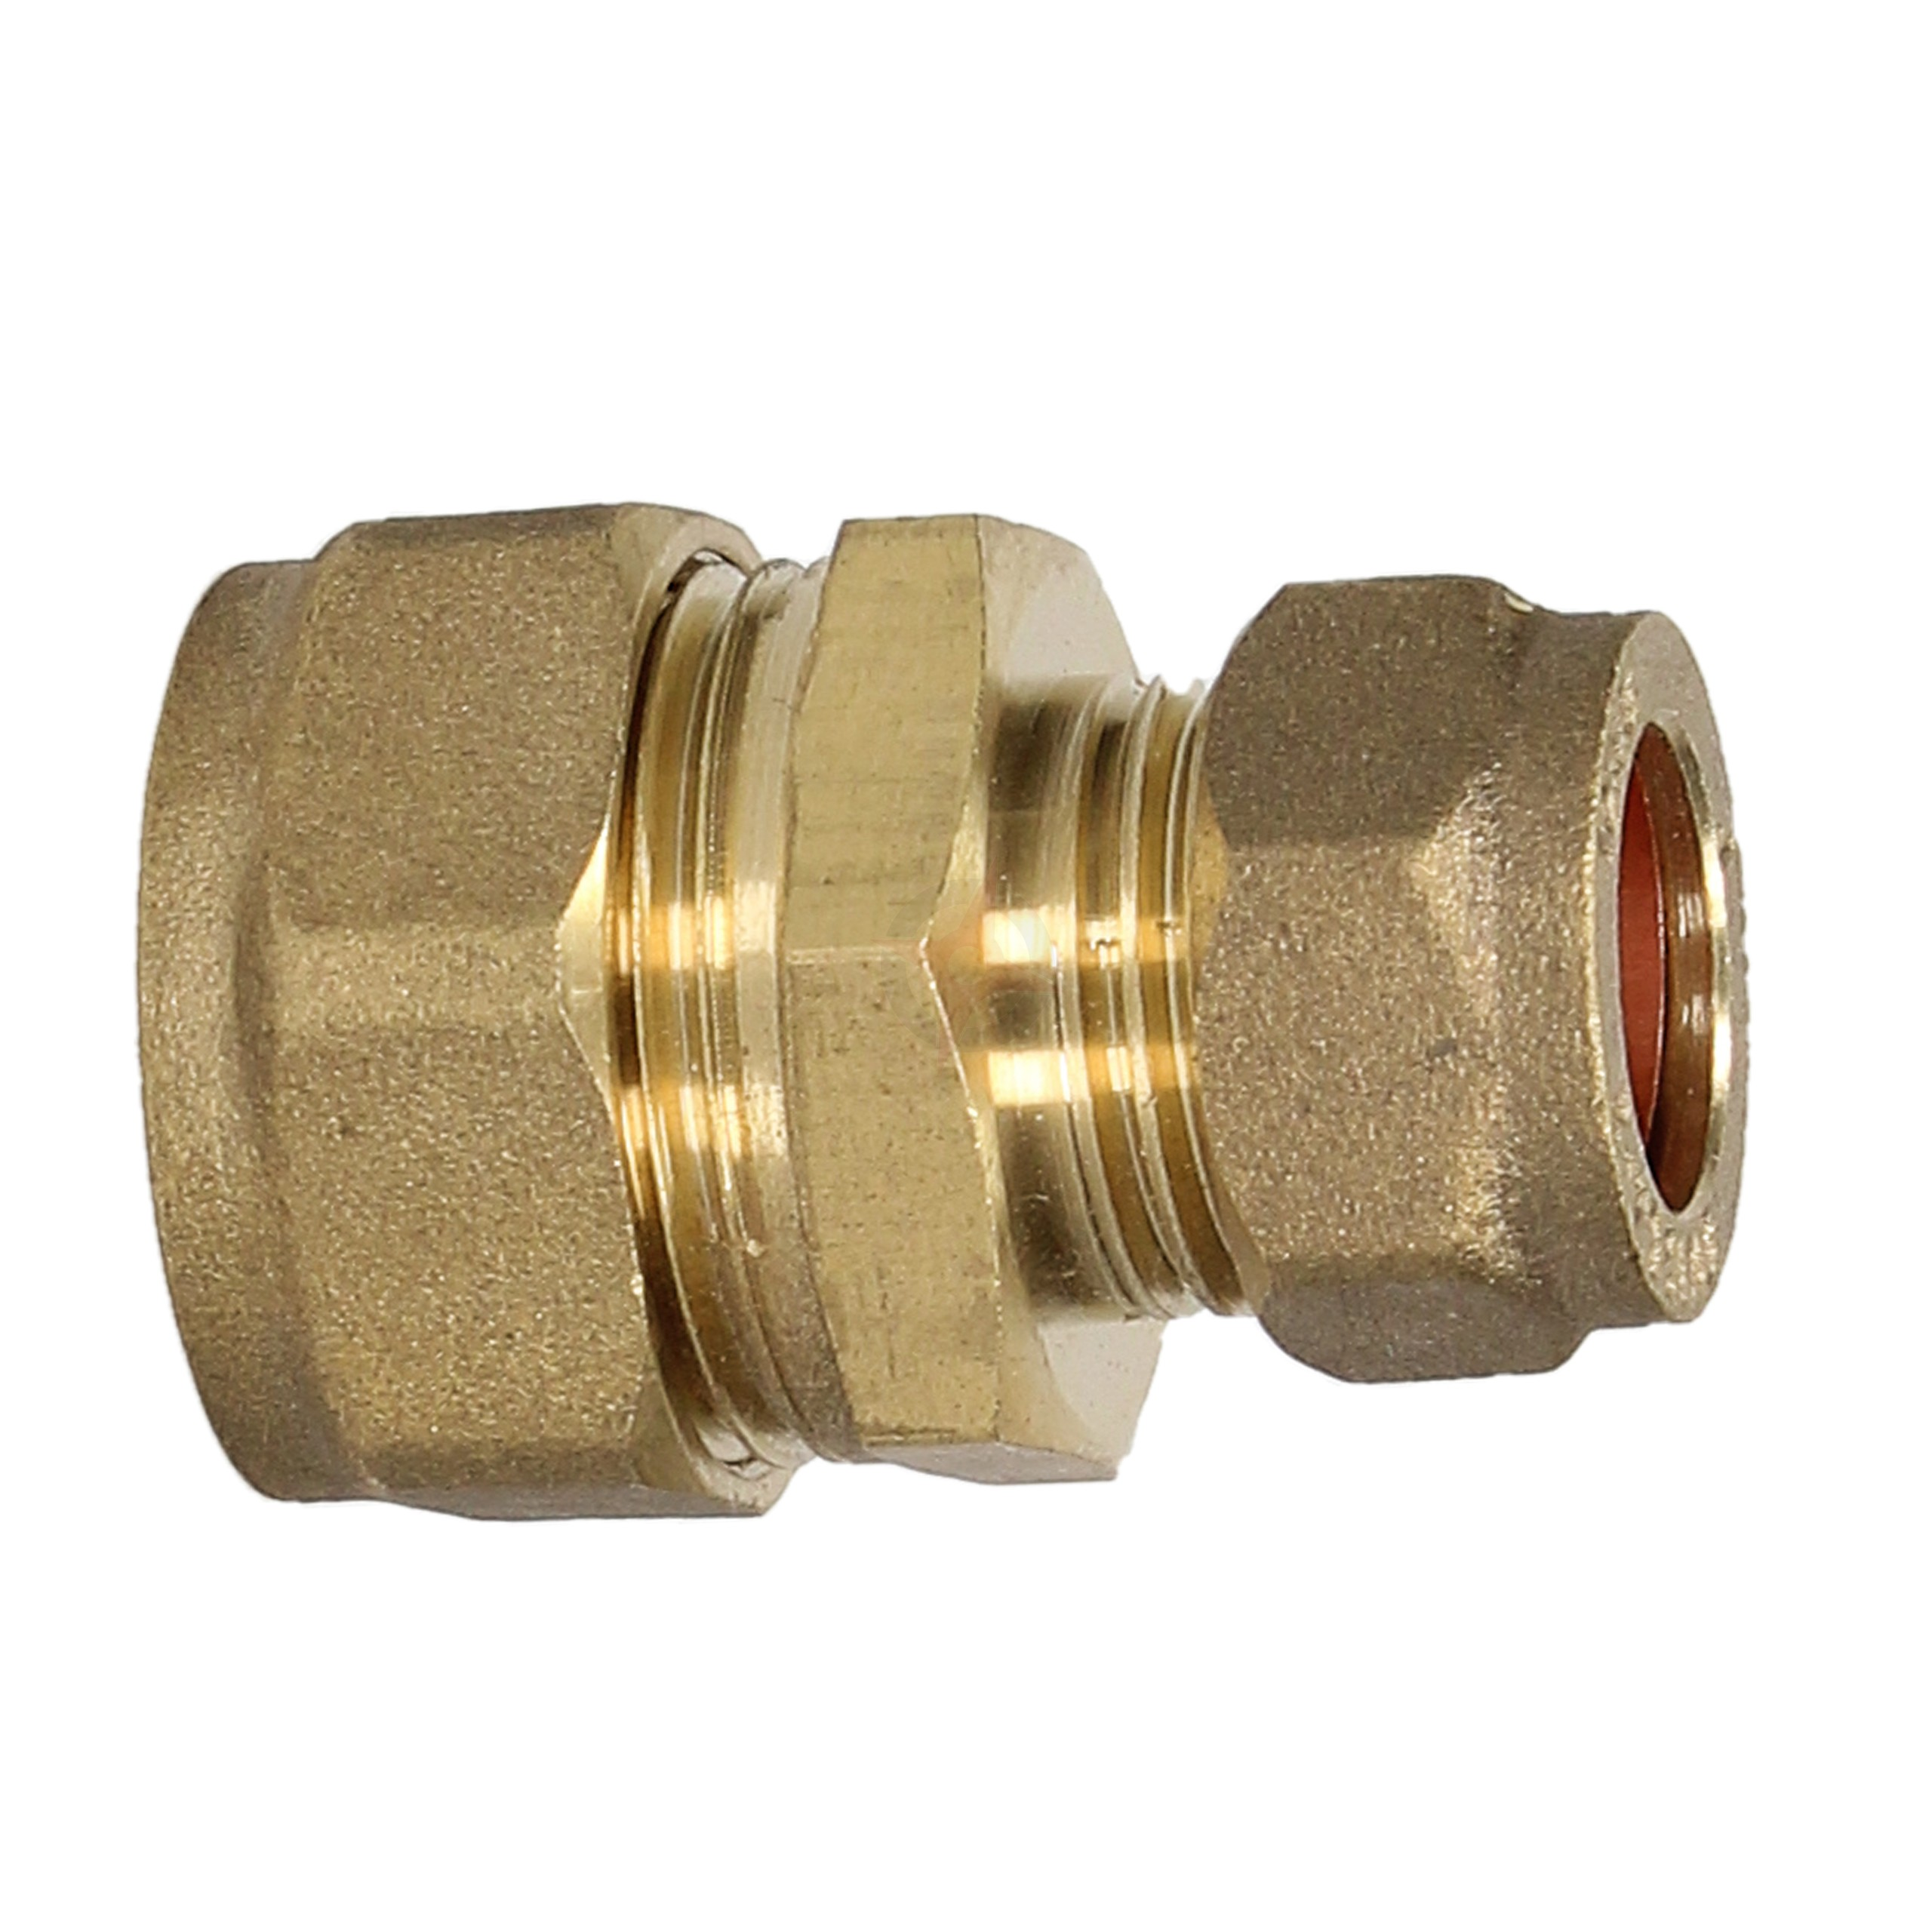 Compression 22mm x 15mm Reducing Coupler